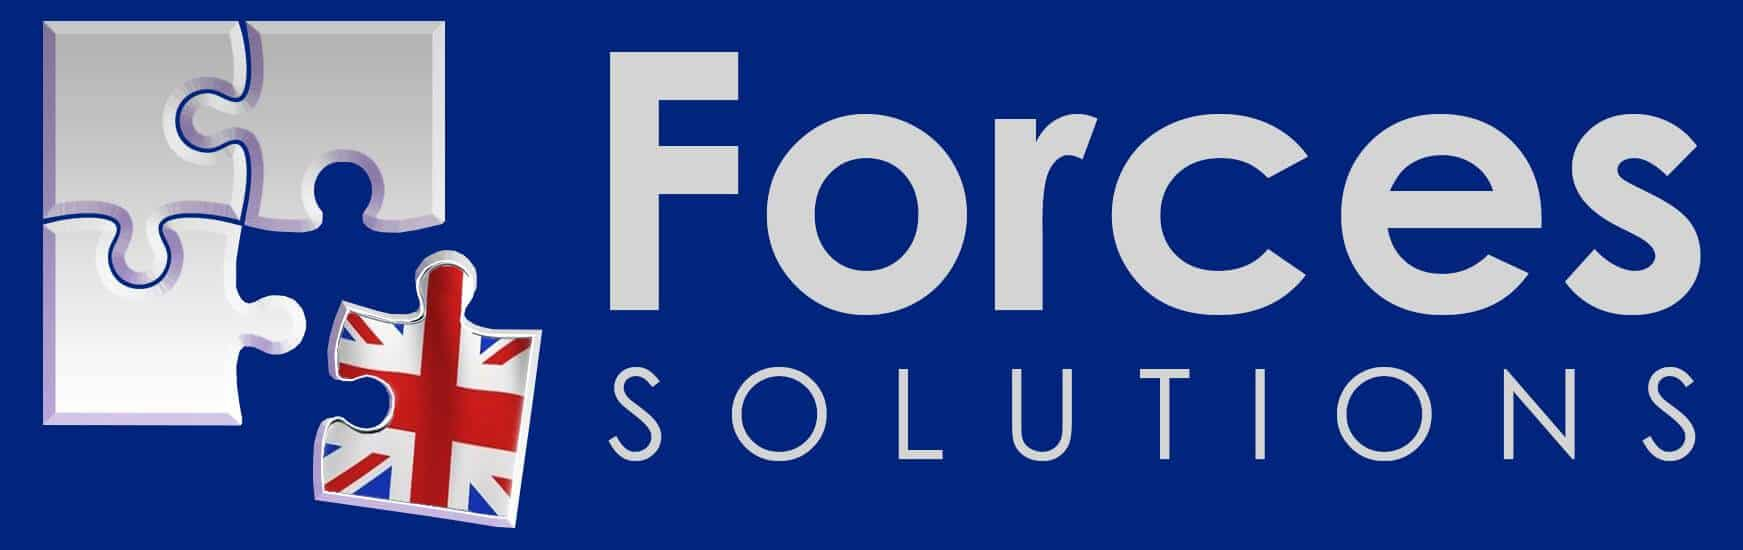 forces-solutions